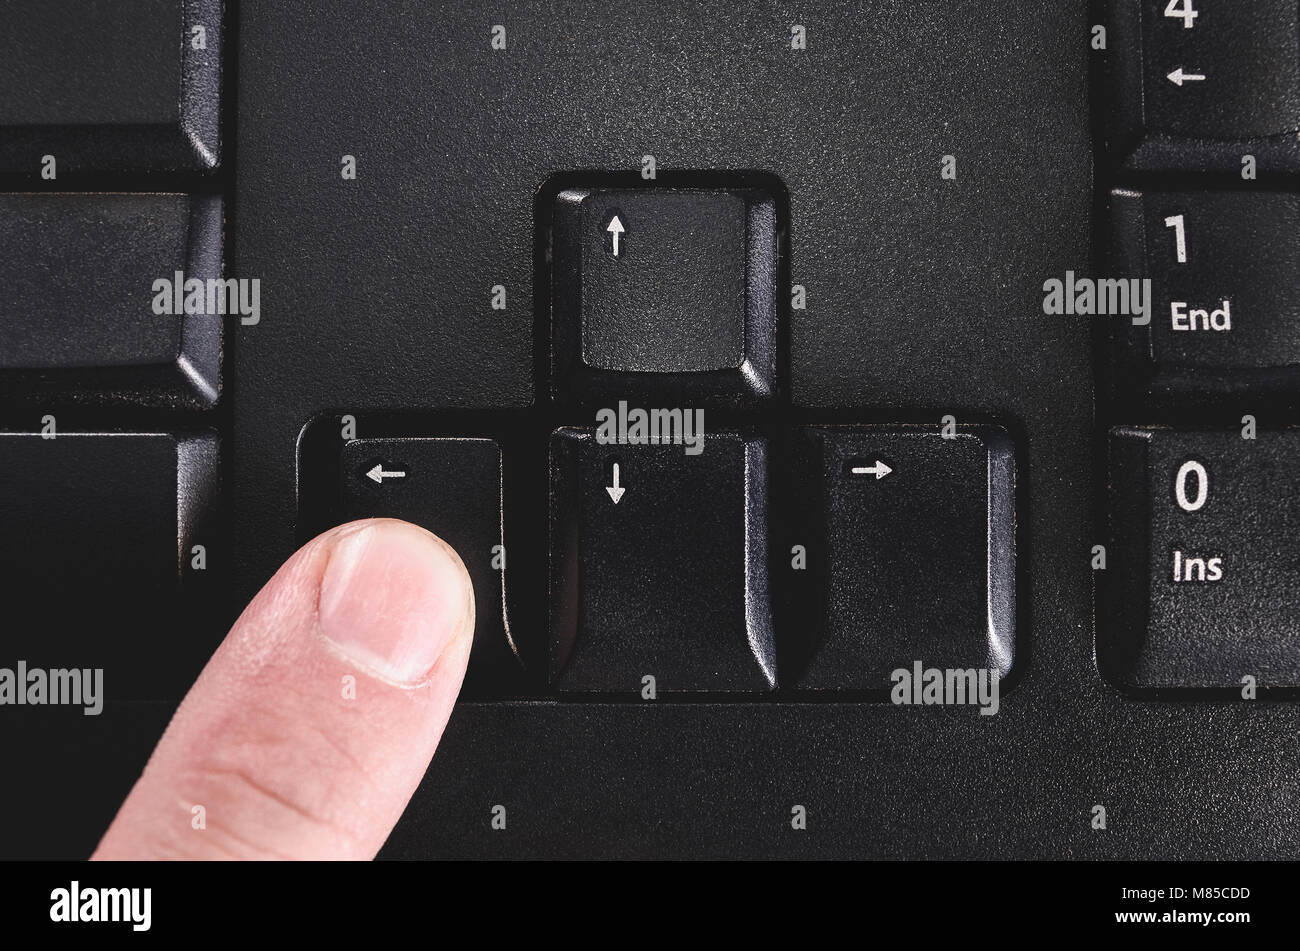 Human finger pressing the directional left key from a black keyboard. - Stock Image